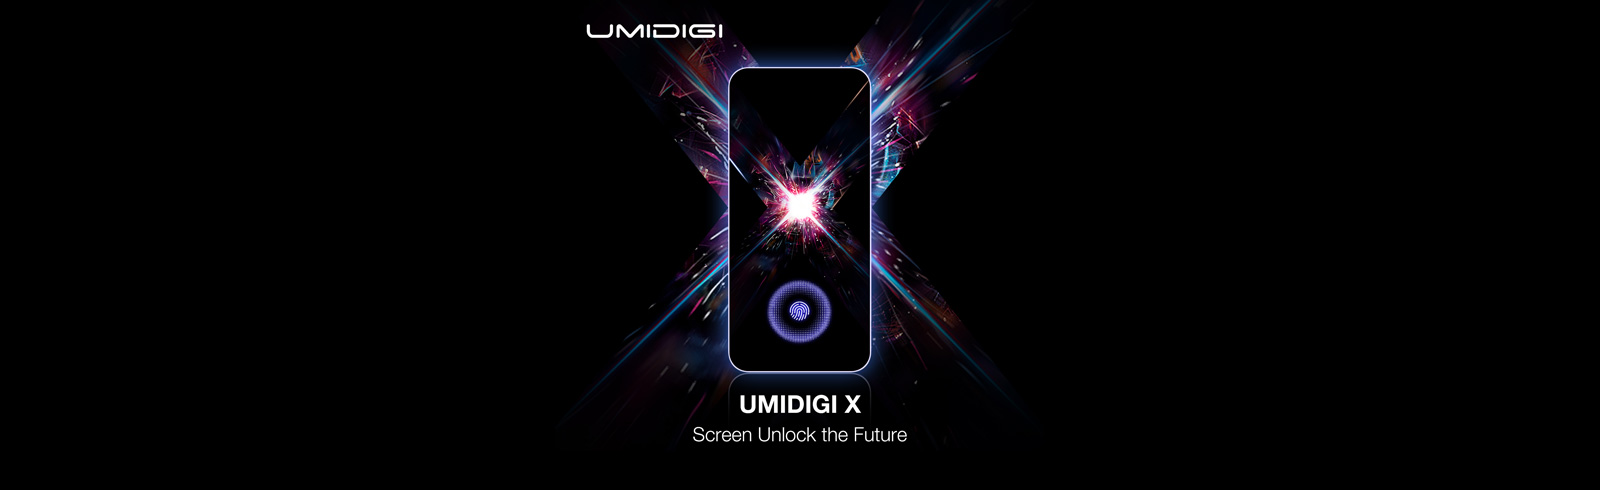 UMIDIGI X with an OLED panel and pop-up selfie camera is teased